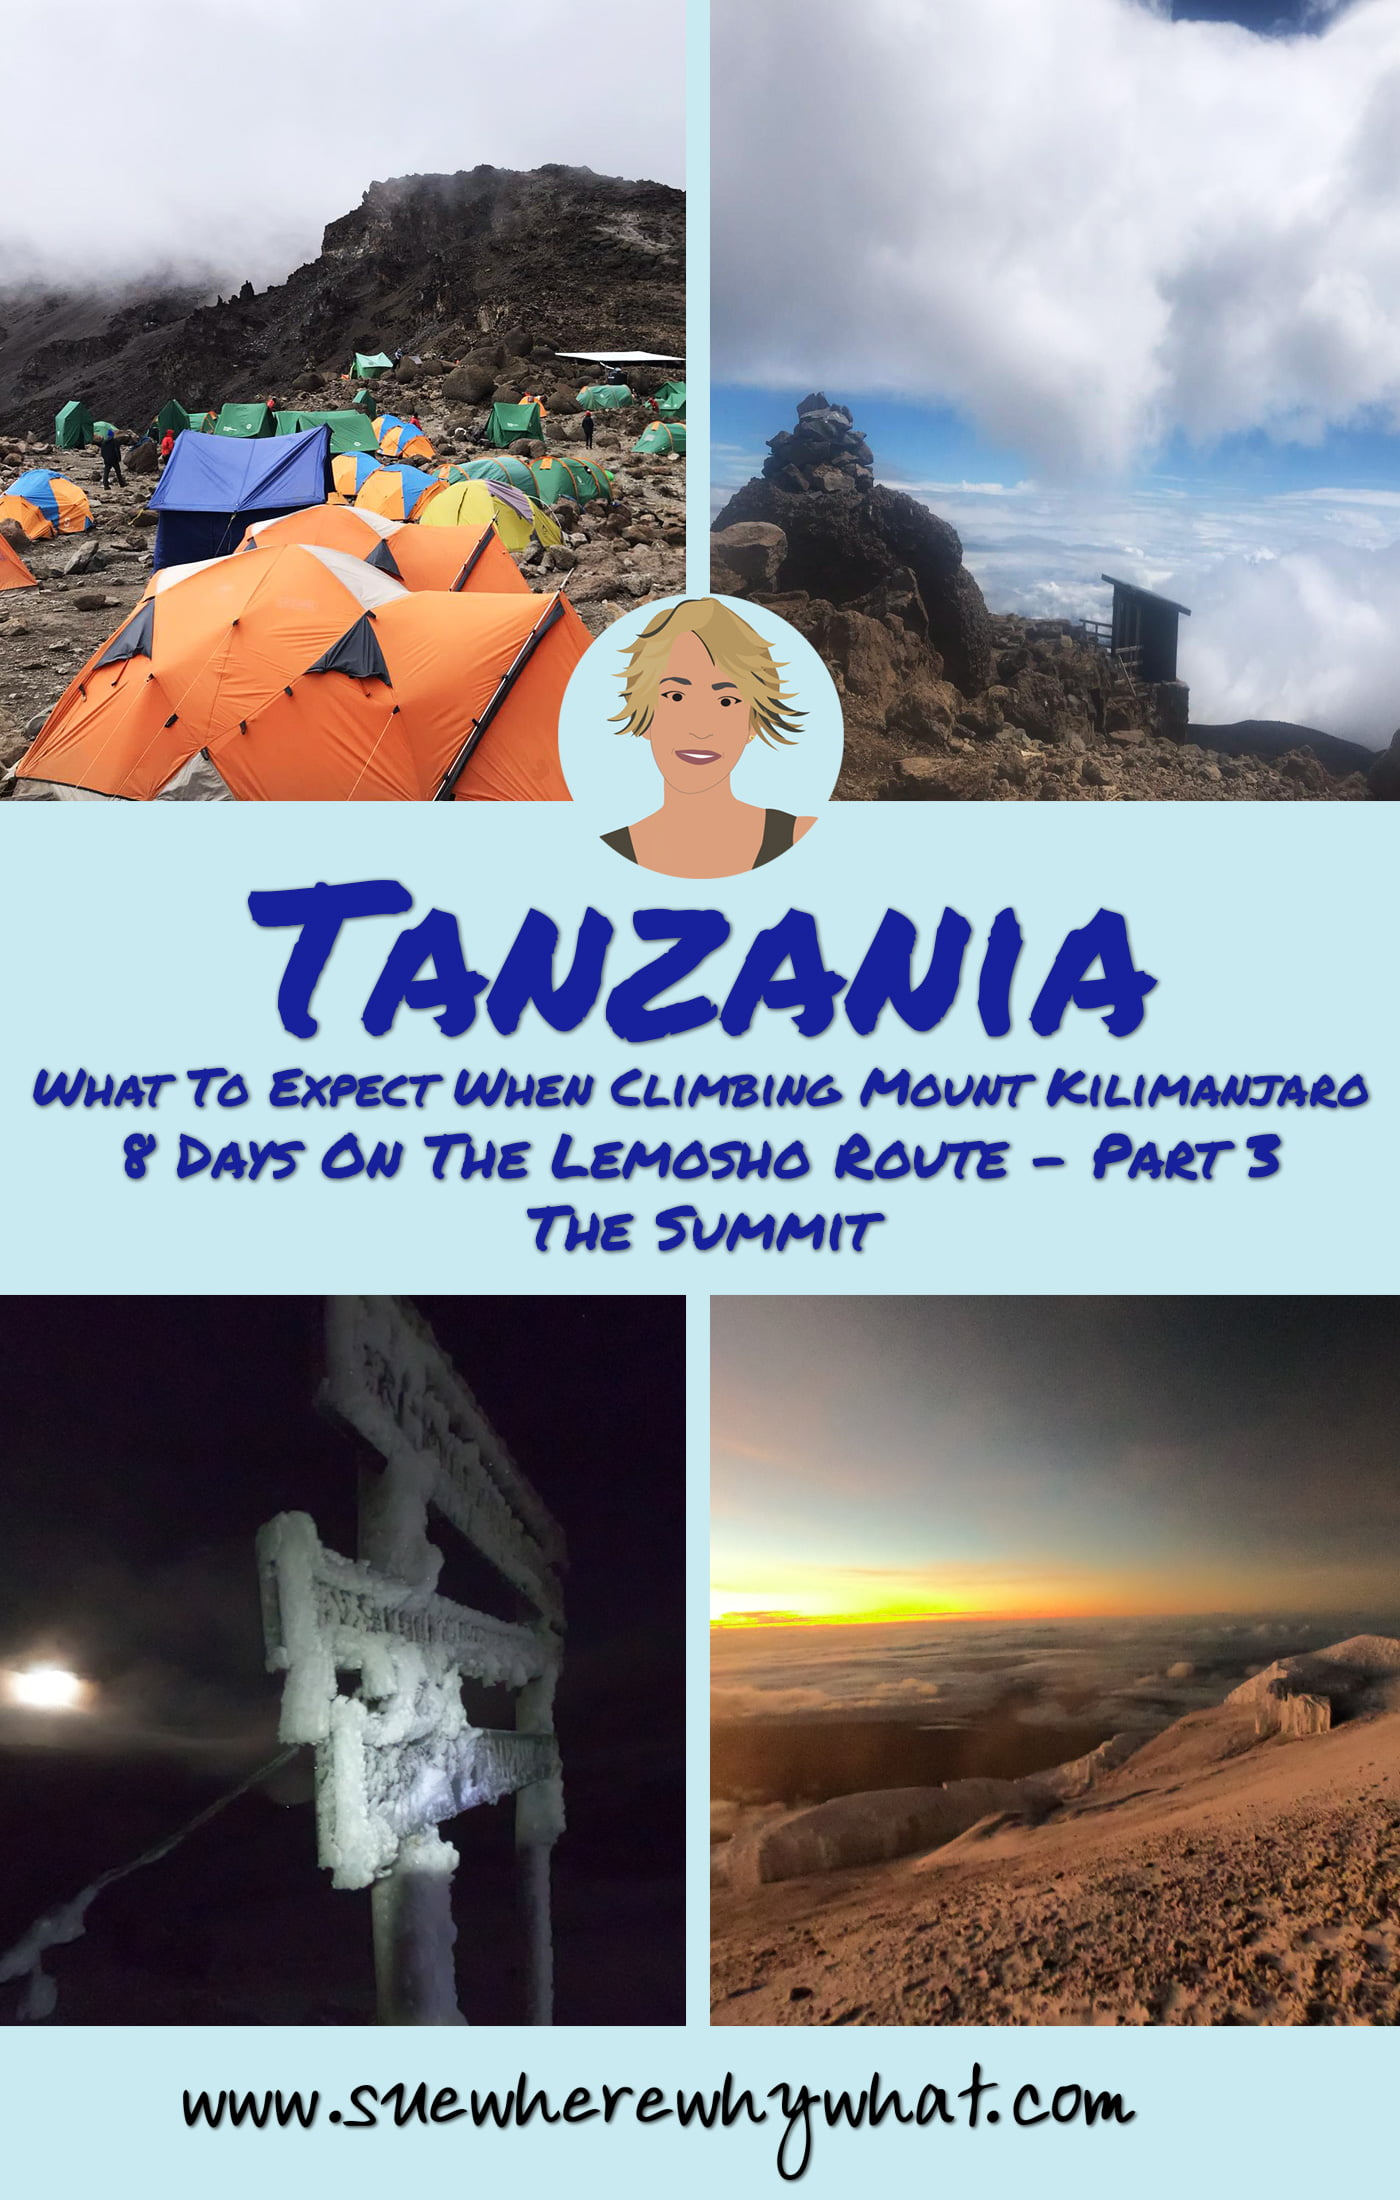 What To Expect When Climbing Mount Kilimanjaro. 8 Days on the Lemosho Route – Part 3 The Summit